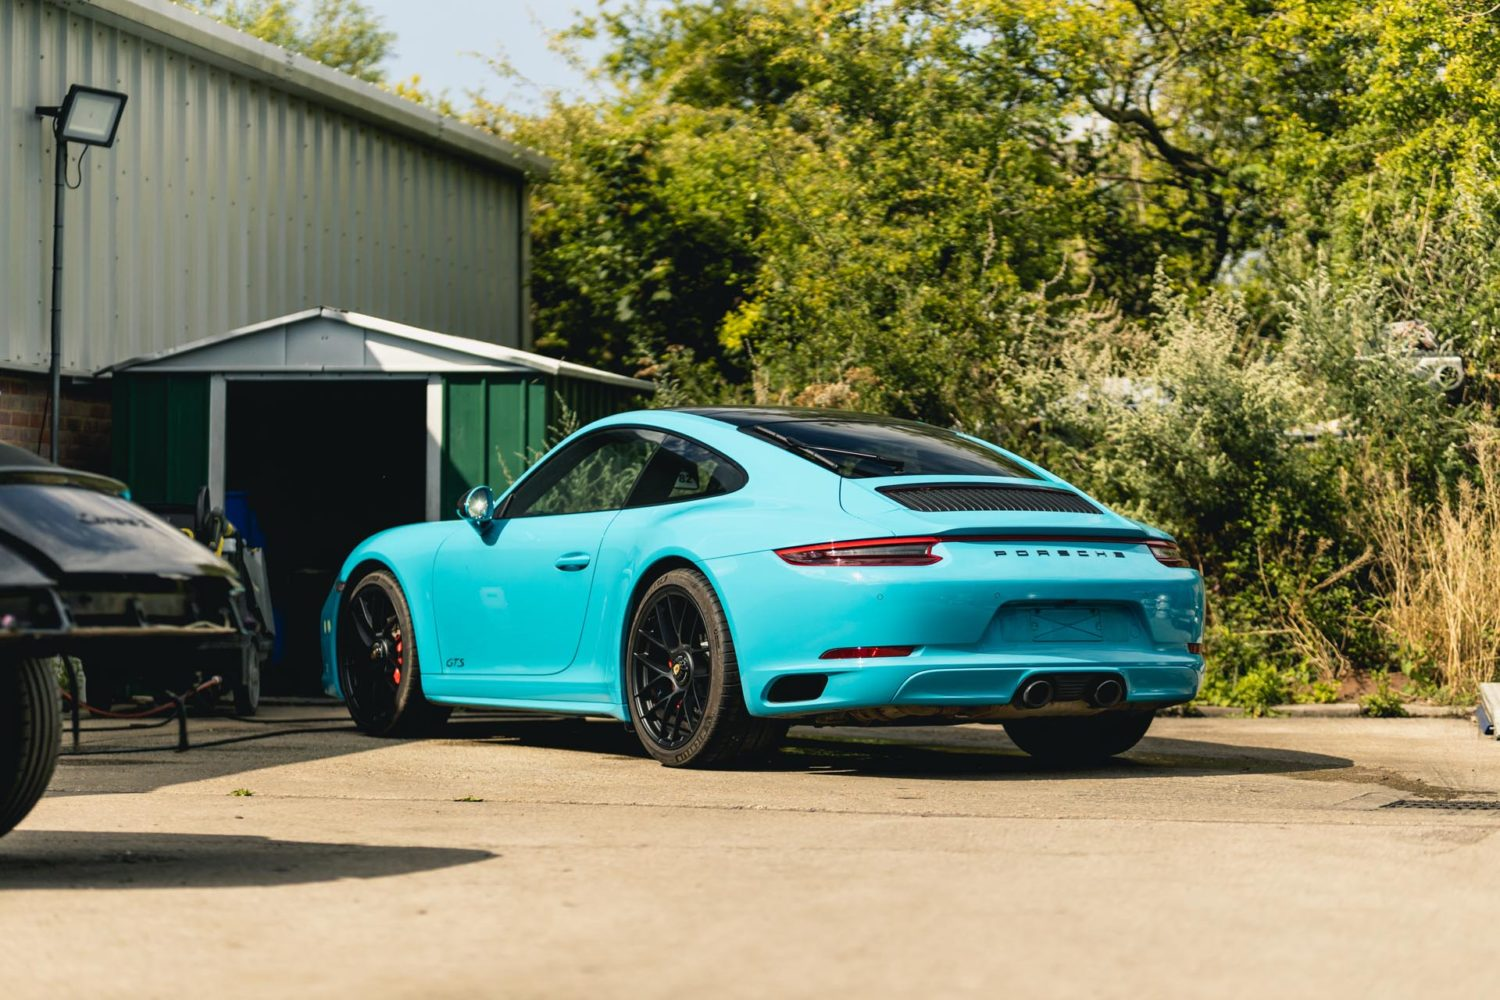 991 gts parked at RPM